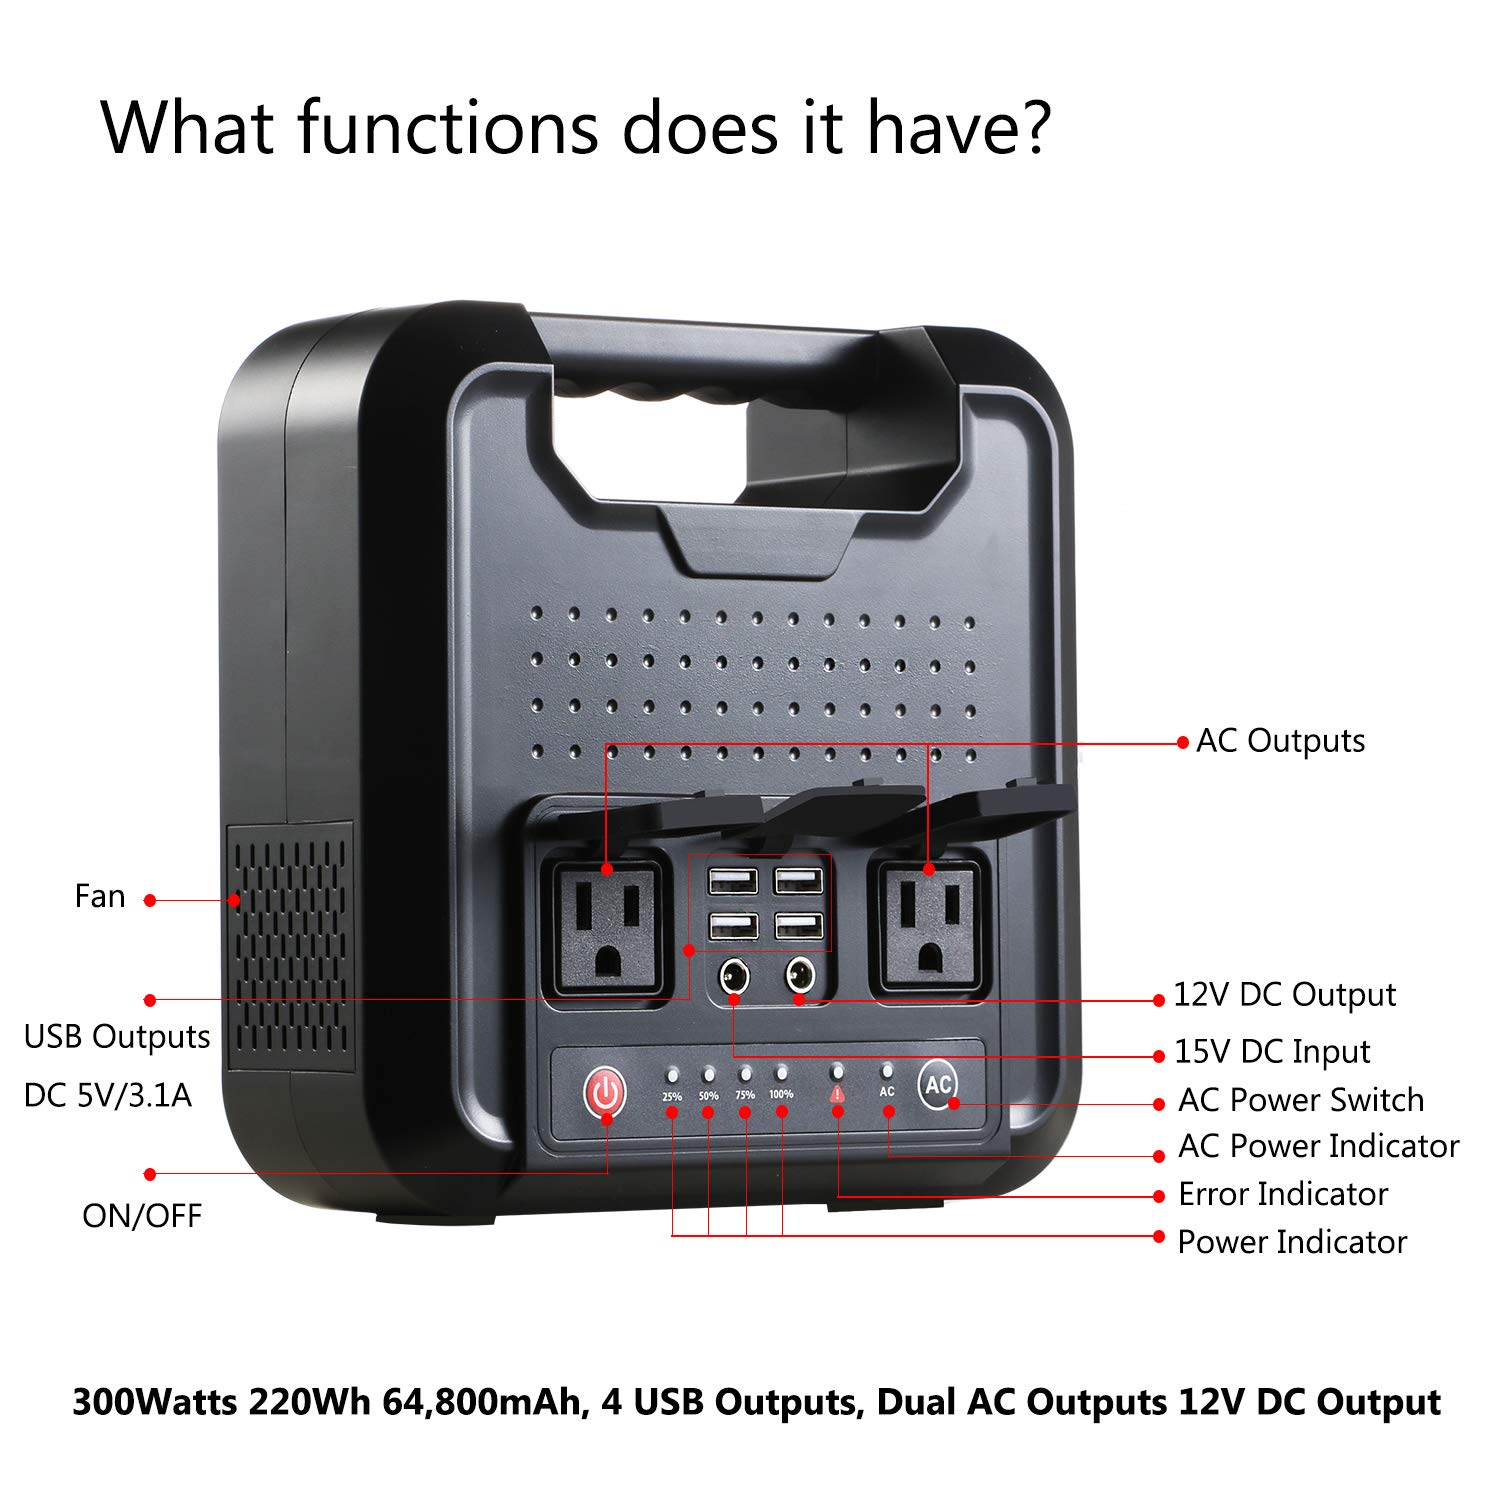 Portable Ac Power Bank 300watts 220wh Pure Sinewave 12v Dc To 220v Inverter Circuit With Battery Charging Function Mini Generator Charger External Packs 110v Outlet